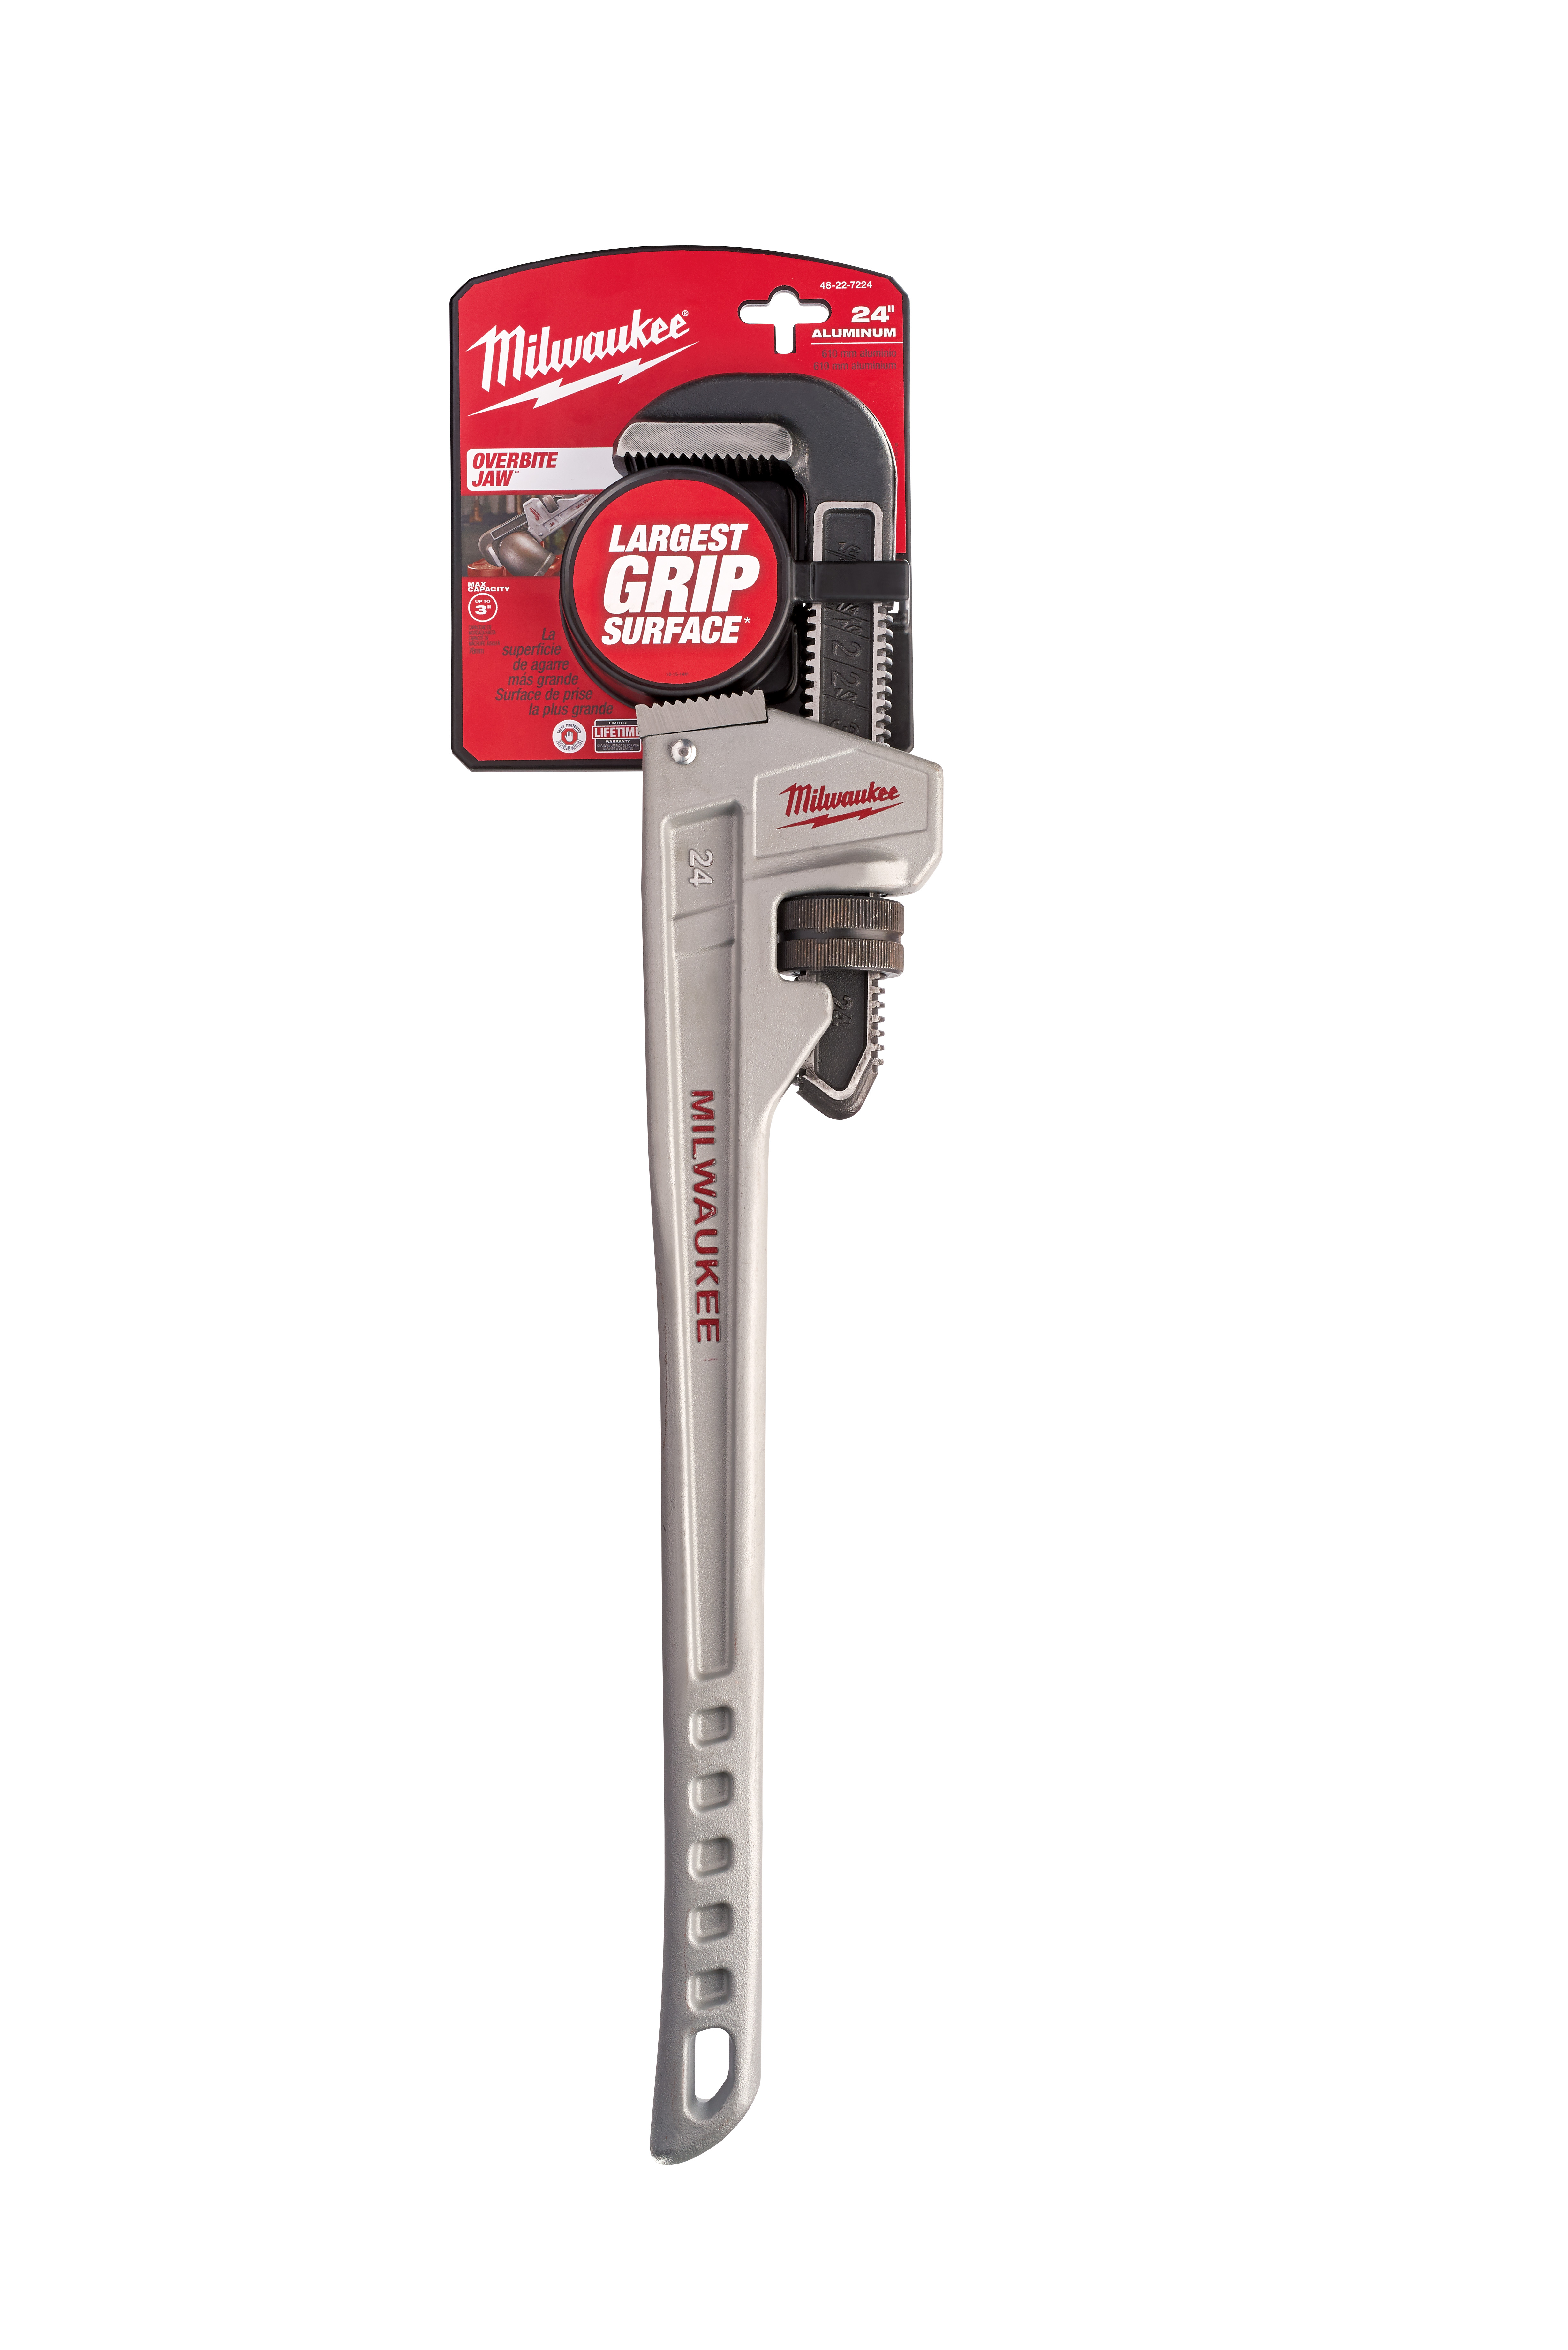 Milwaukee® OVERBITE JAW ™ 48-22-7224 Pipe Wrench, 24 in OAL, Hook Jaw, Aluminum Handle